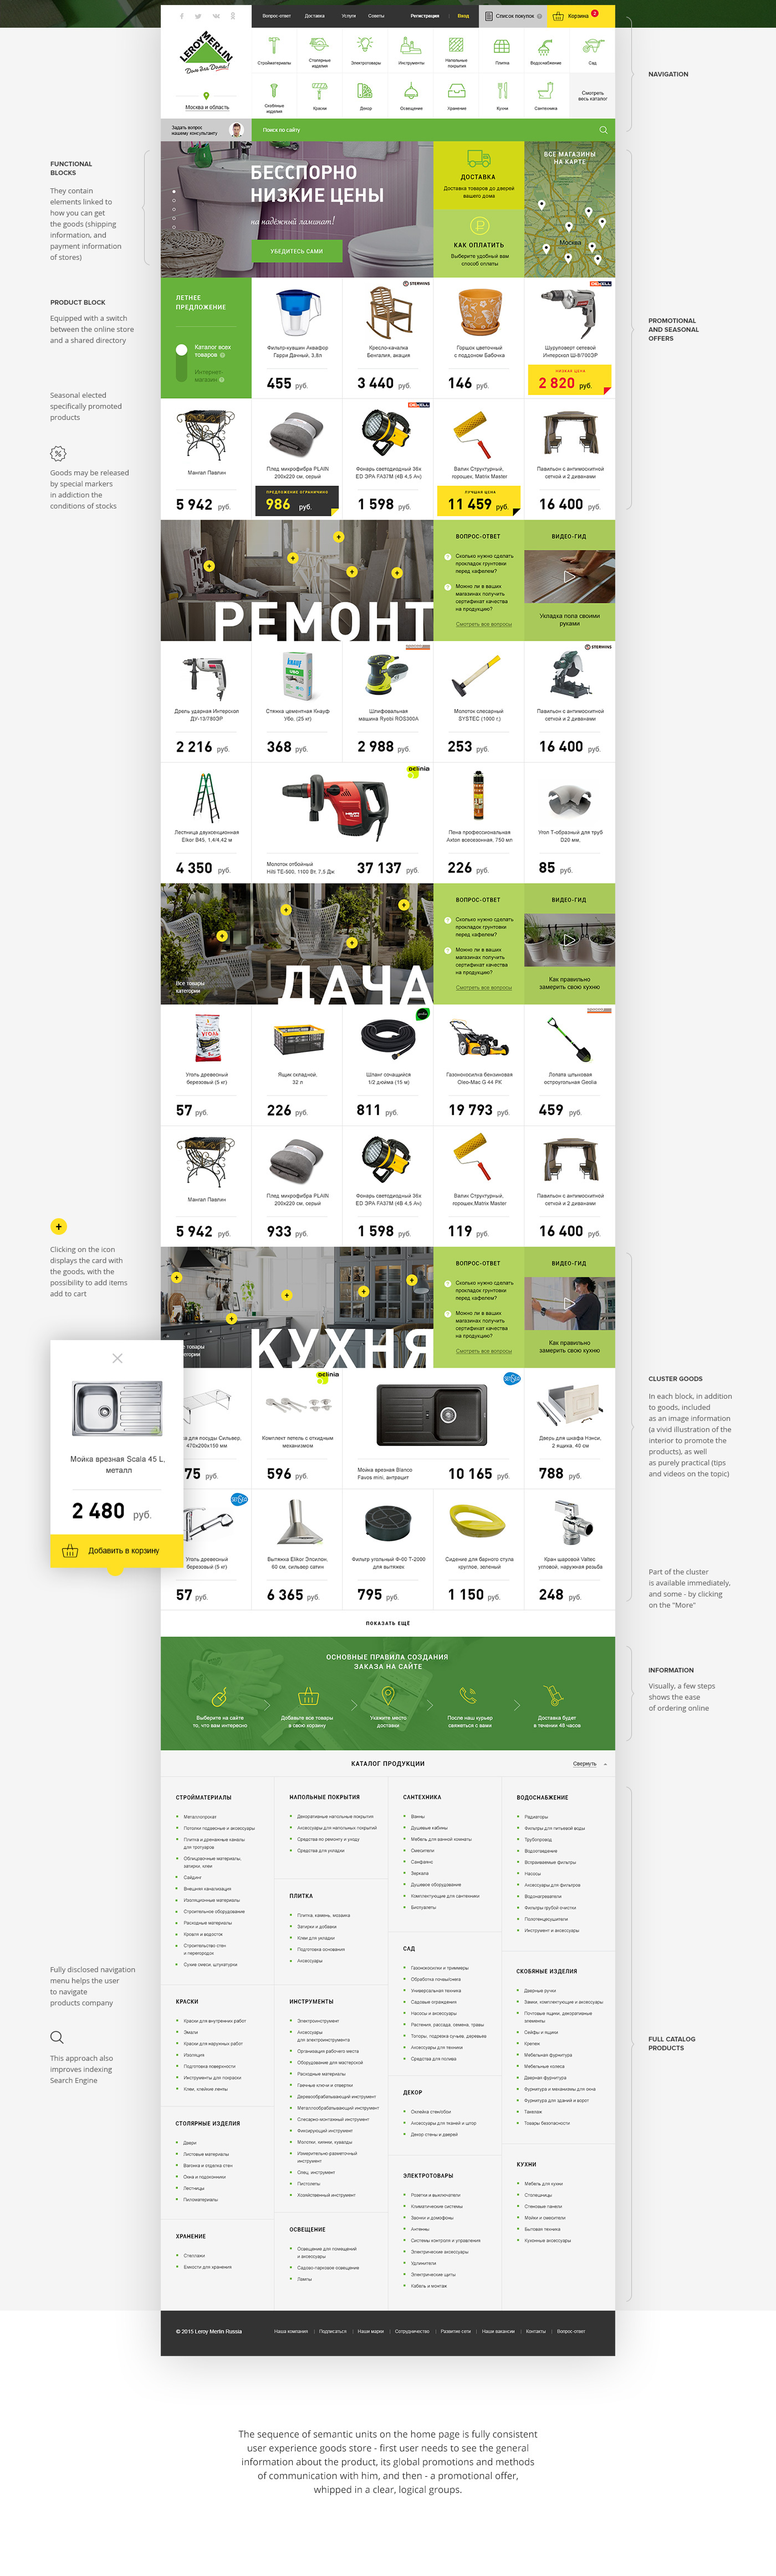 The International Network Of Hypermarkets Selling Goods For Repair And Construction Company History Dates B Unique Web Design Modern Website Design Web Design